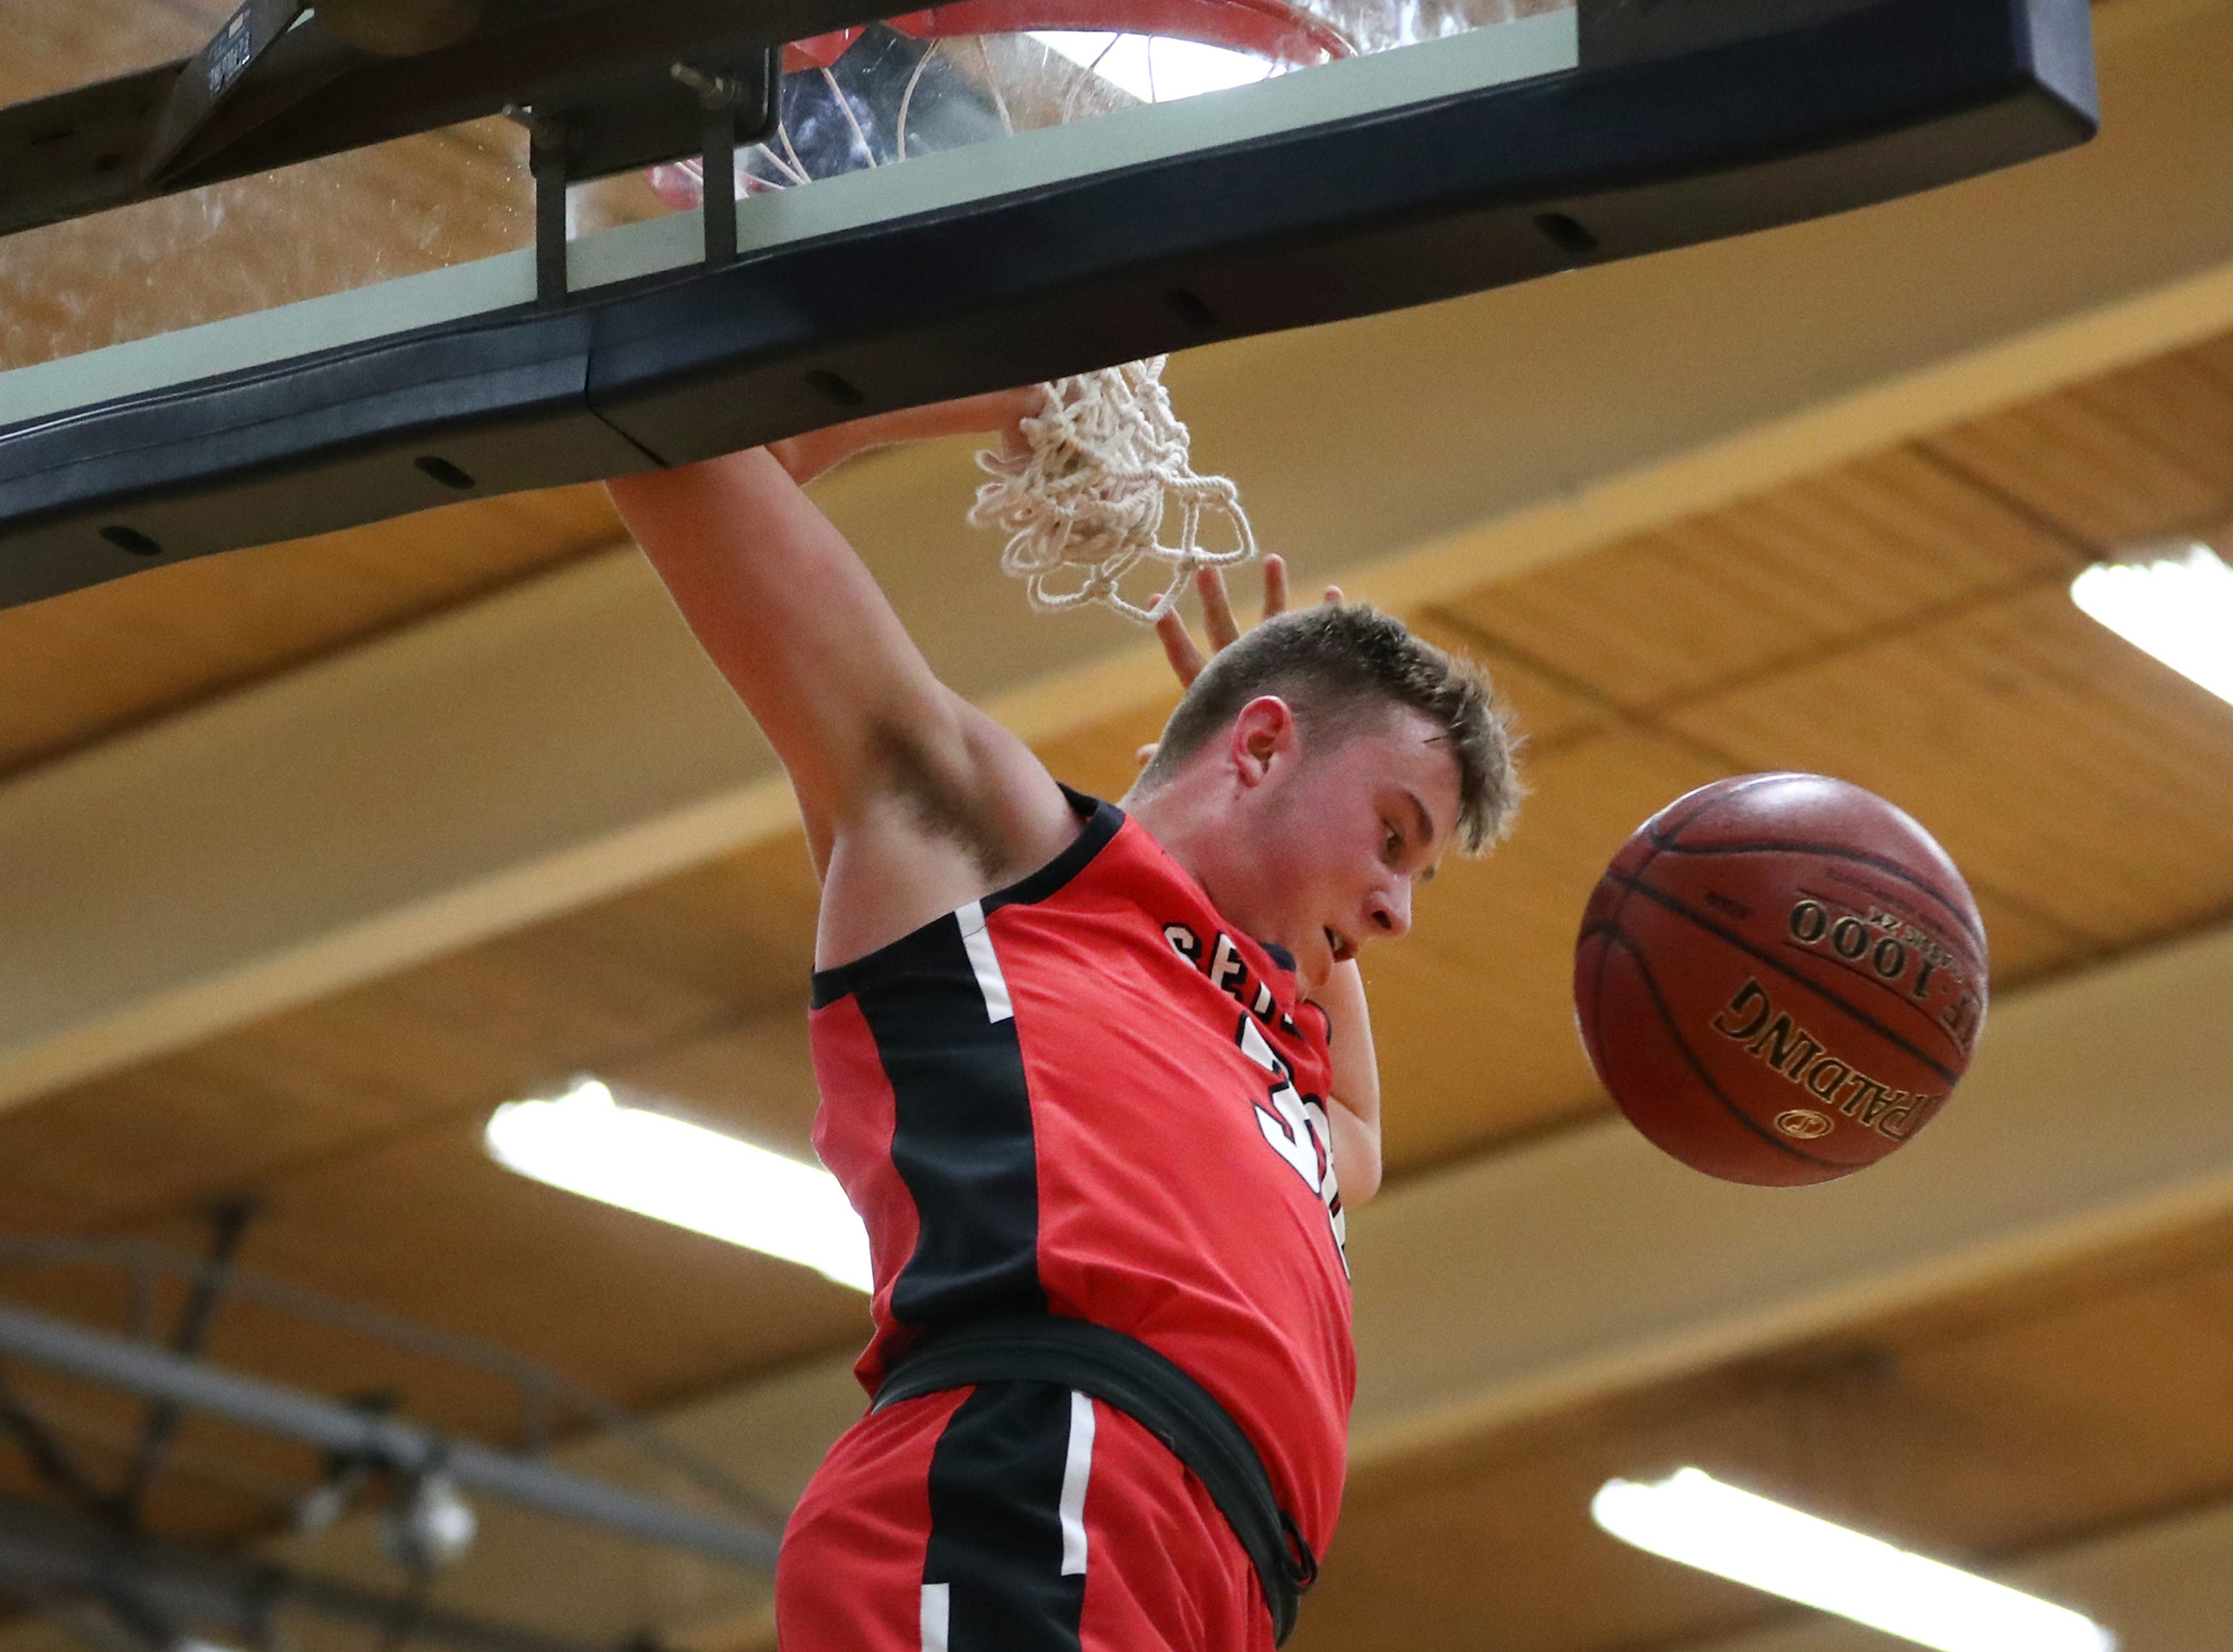 Seymour High School's Trent Blake scores after a teammates ball goes off the backboard against Xavier High School Friday, Feb. 8, 2019, in Appleton, Wis. Xavier High School defeated Seymour 92-50.Danny Damiani/USA TODAY NETWORK-Wisconsin